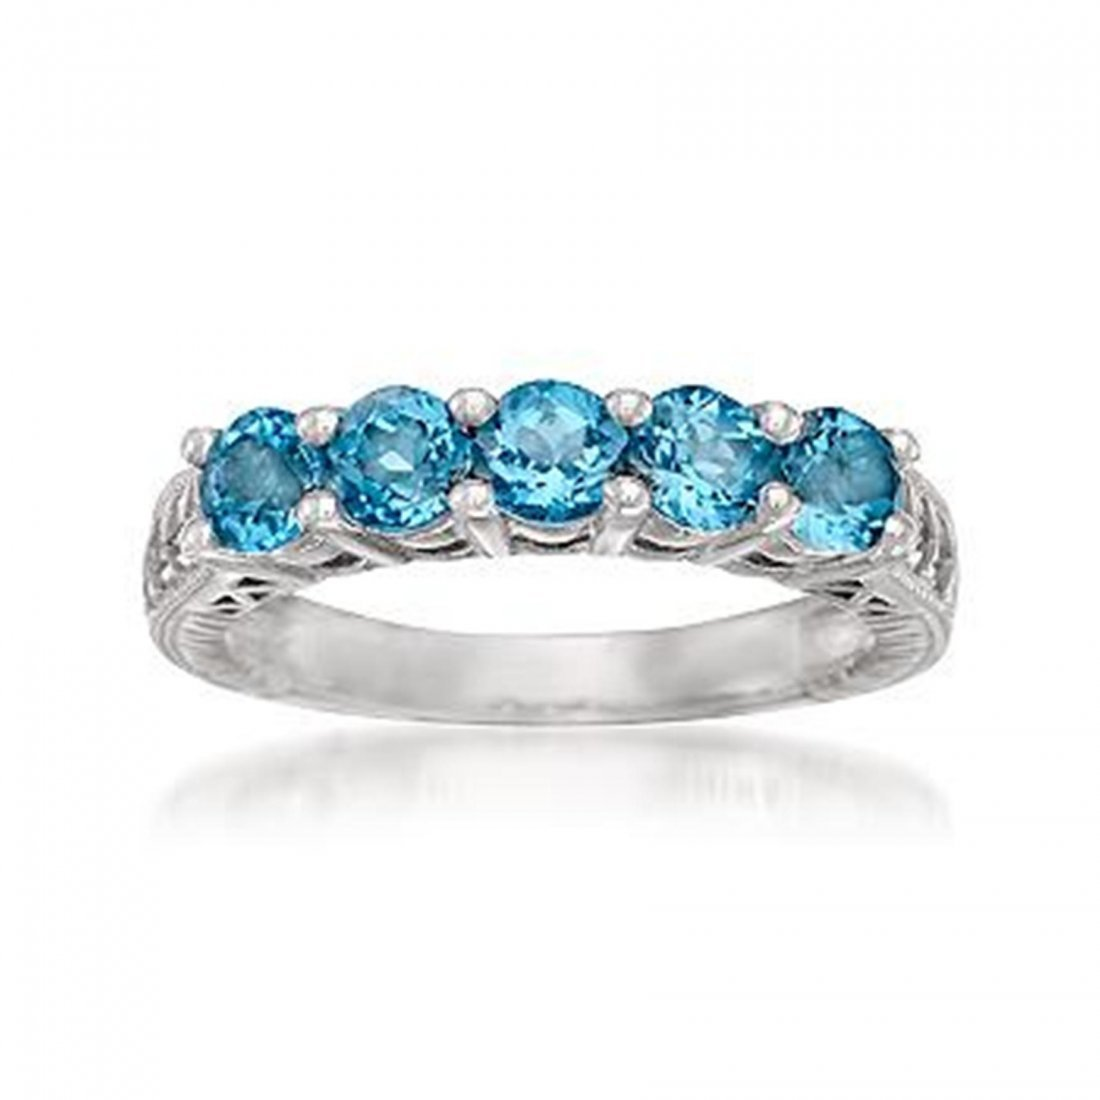 1.50 ct. t.w. Blue Topaz 5-Stone Ring in Sterling